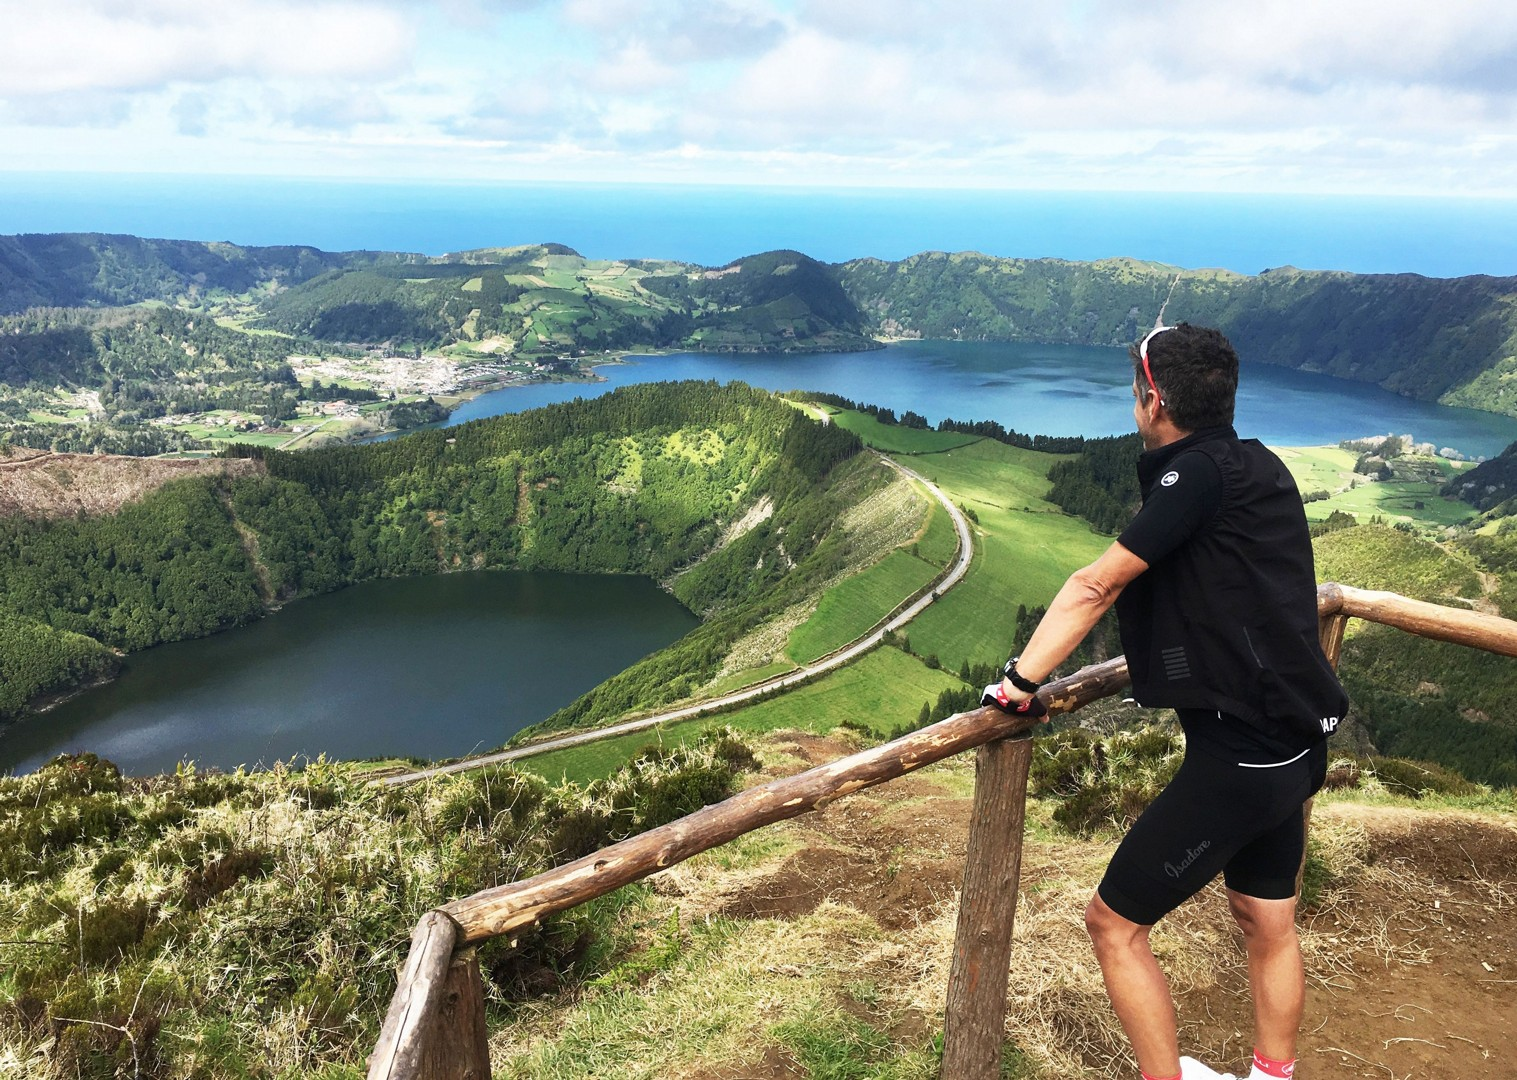 sete-citades-guided-road-cycling-holiday-the-azores-lost-world-of-sao-miguel.jpg - The Azores - Lost World of Sao Miguel - Guided Road Cycling Holiday - Road Cycling